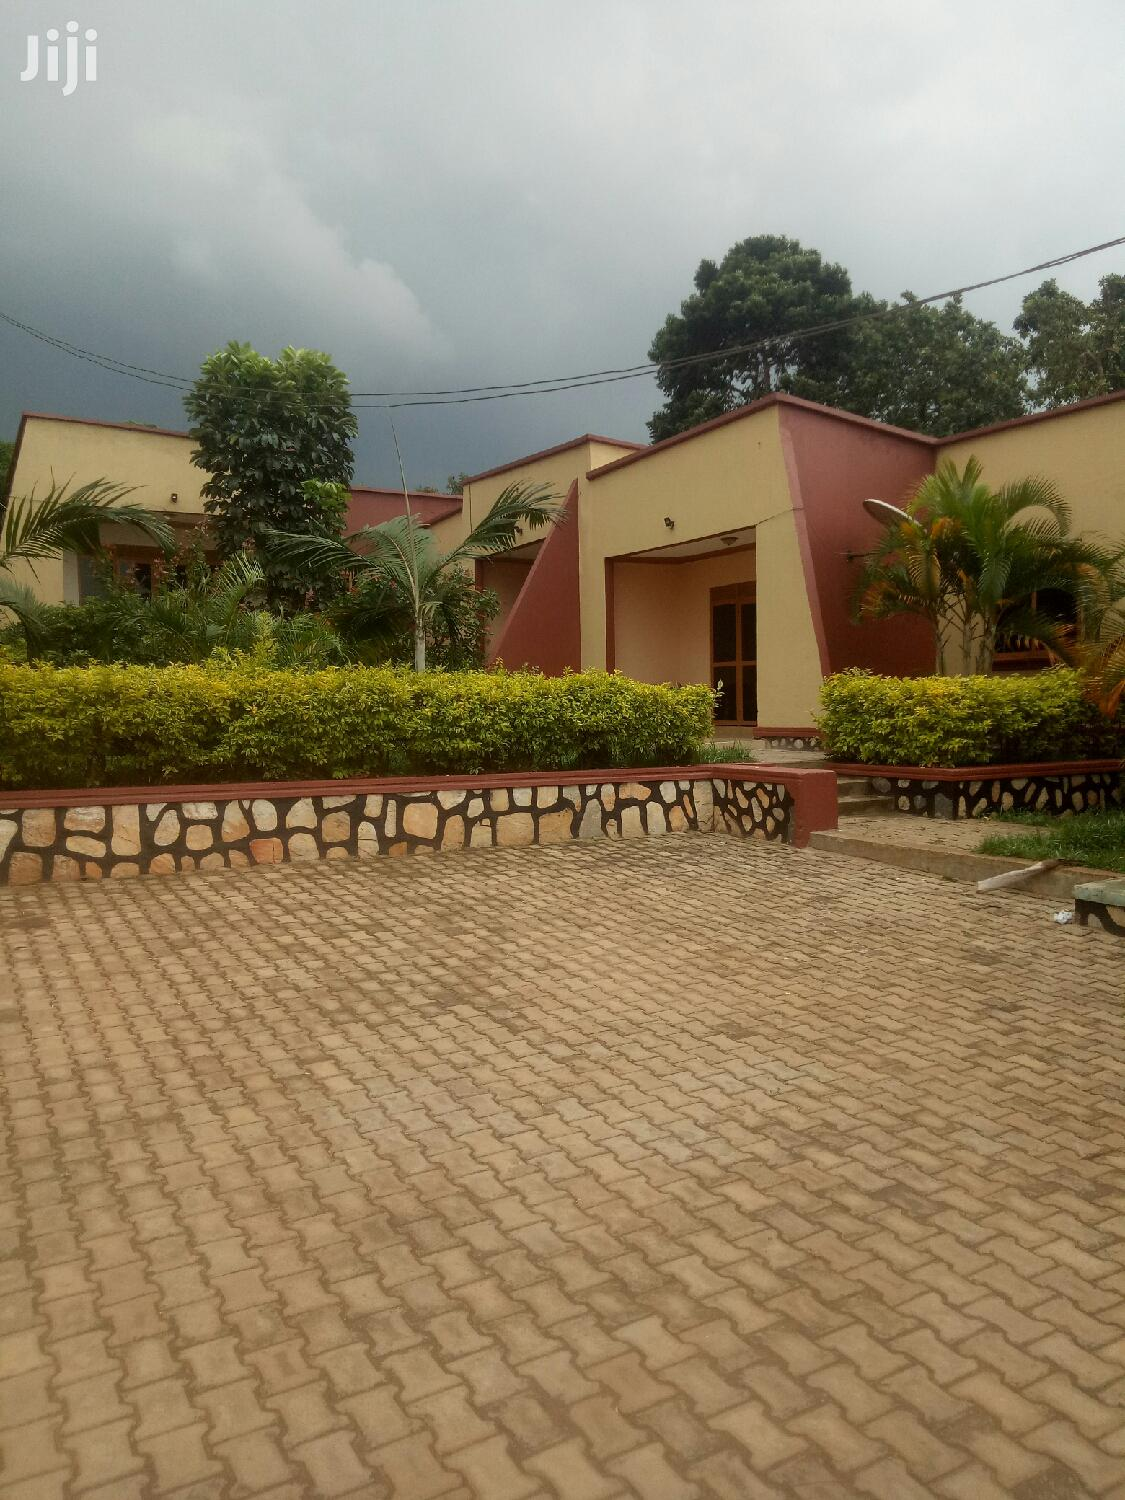 Kireka Single Room Self Contained For Rent   Houses & Apartments For Rent for sale in Kampala, Central Region, Uganda